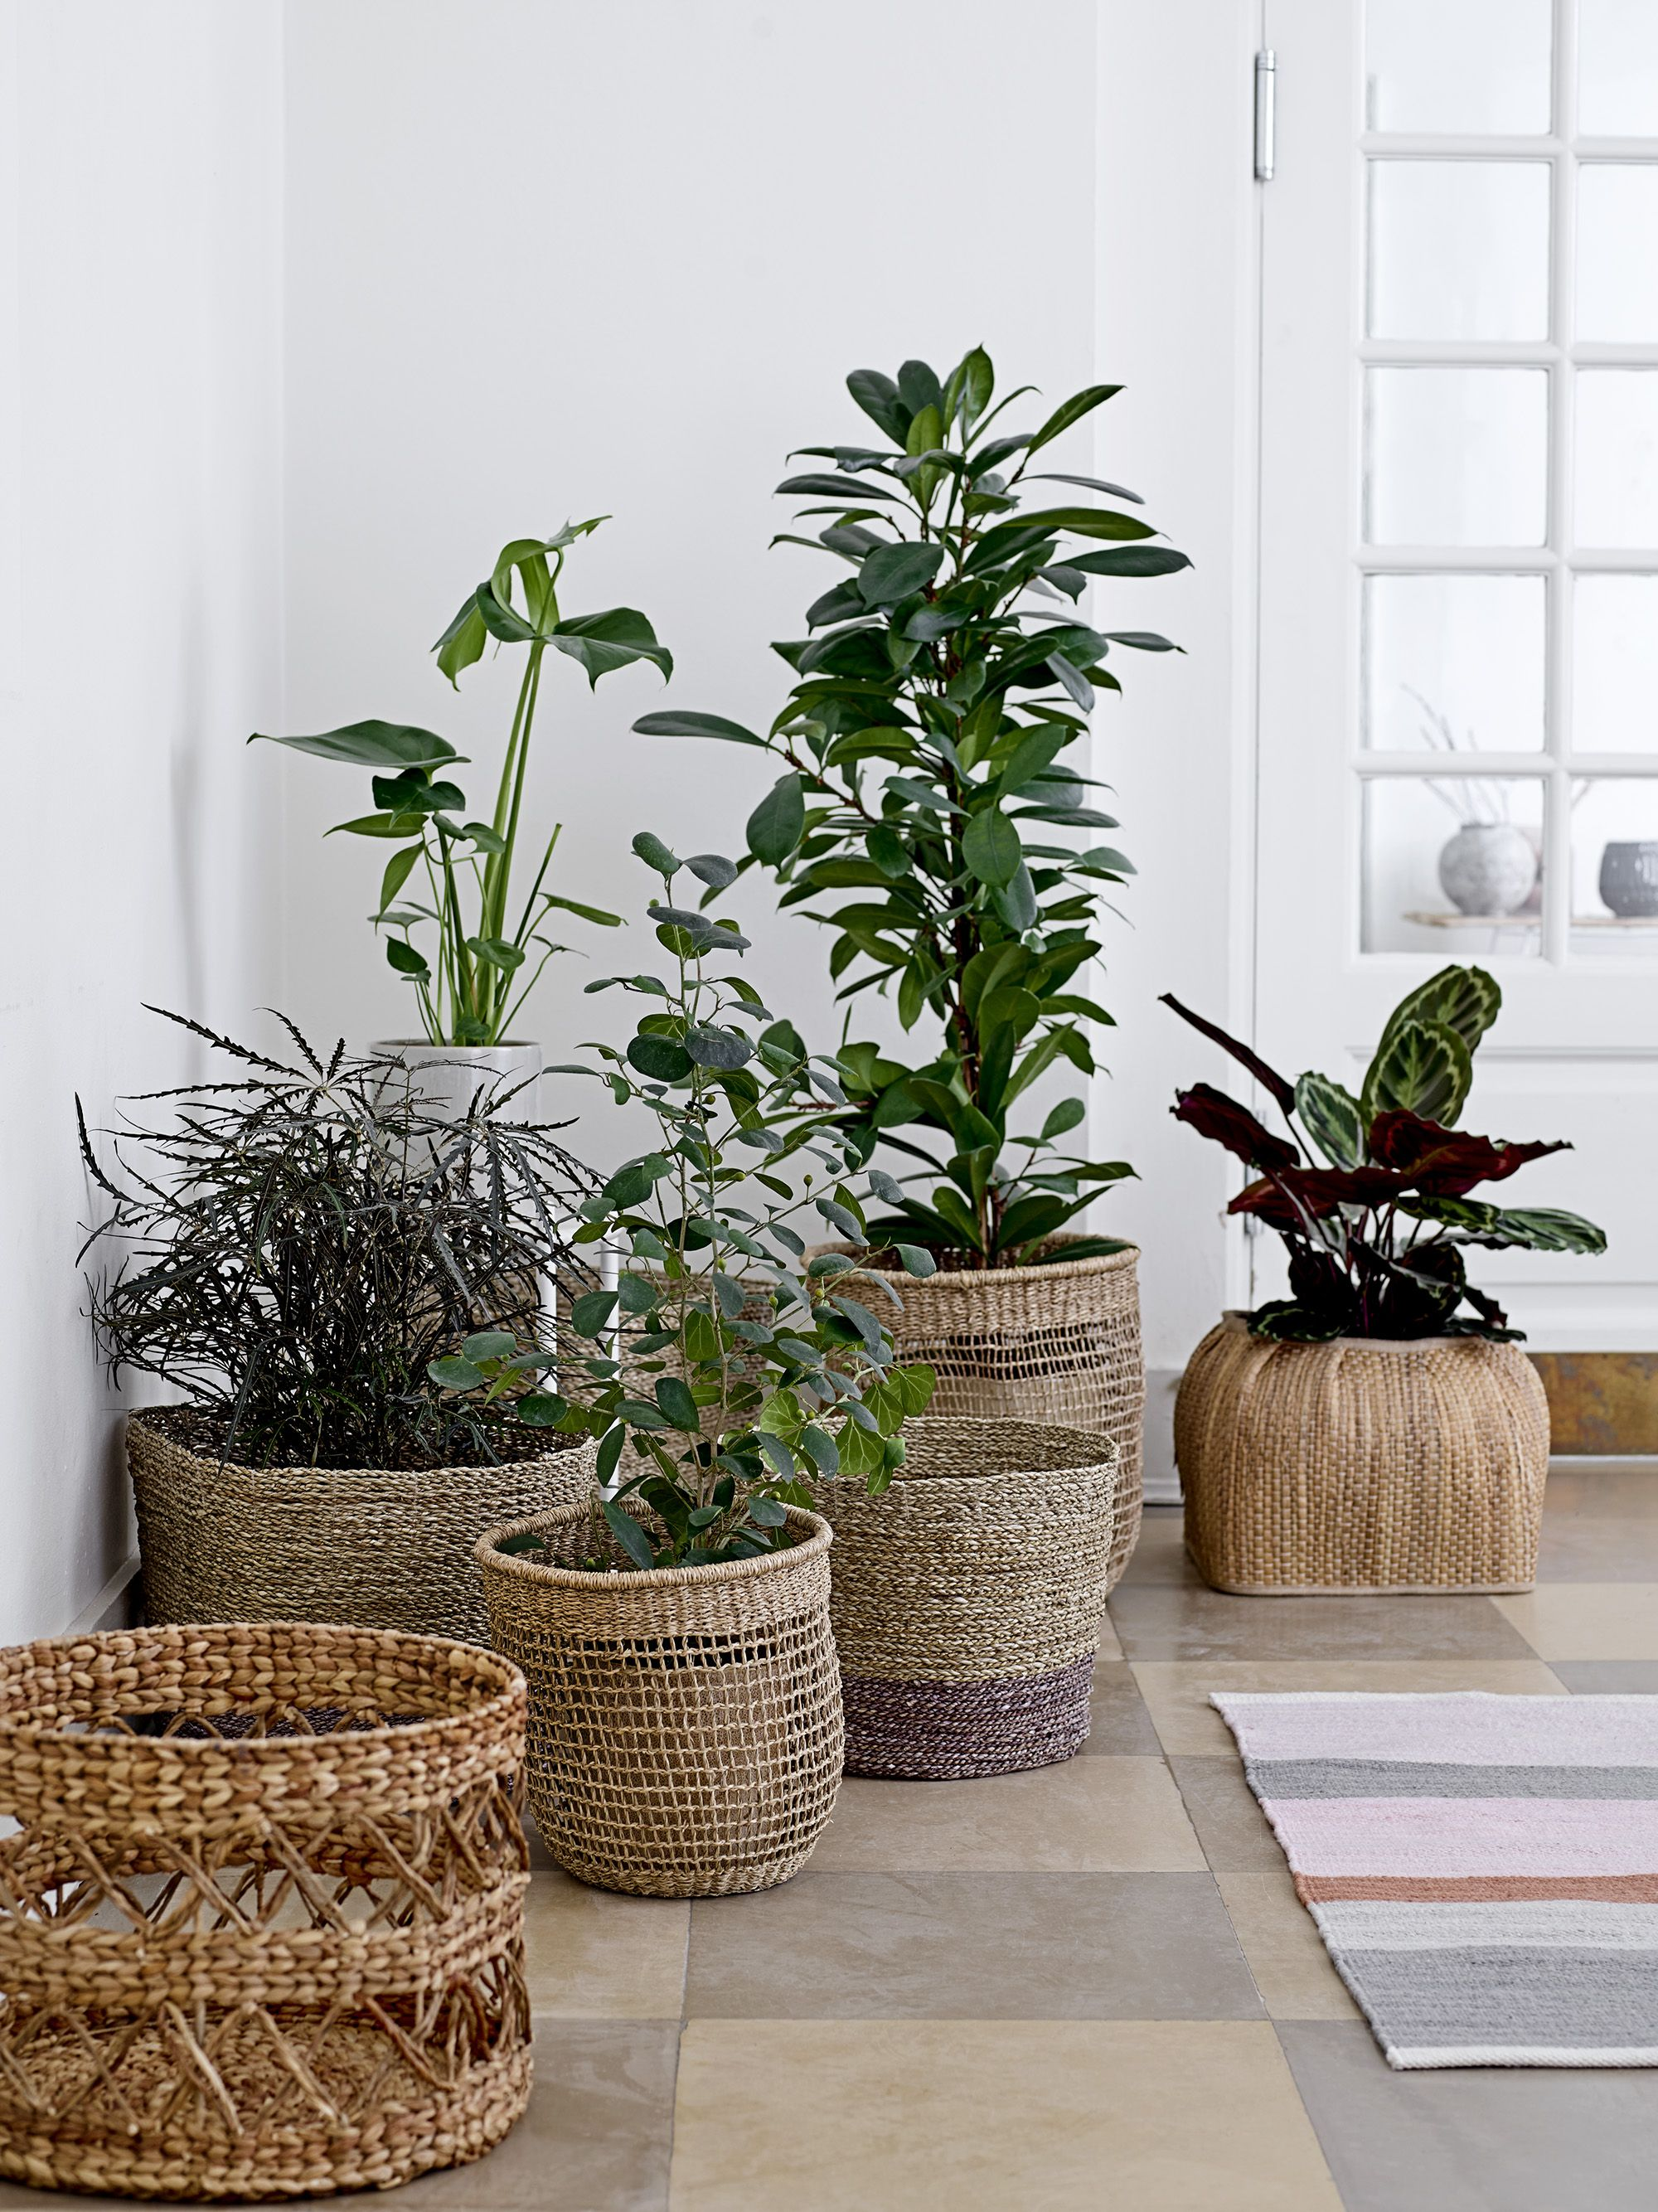 Baskets Are Perfectly Used For Plants Indoor 3 Design By Bloomingville Plant Decor Flower Pots Indoor Plants